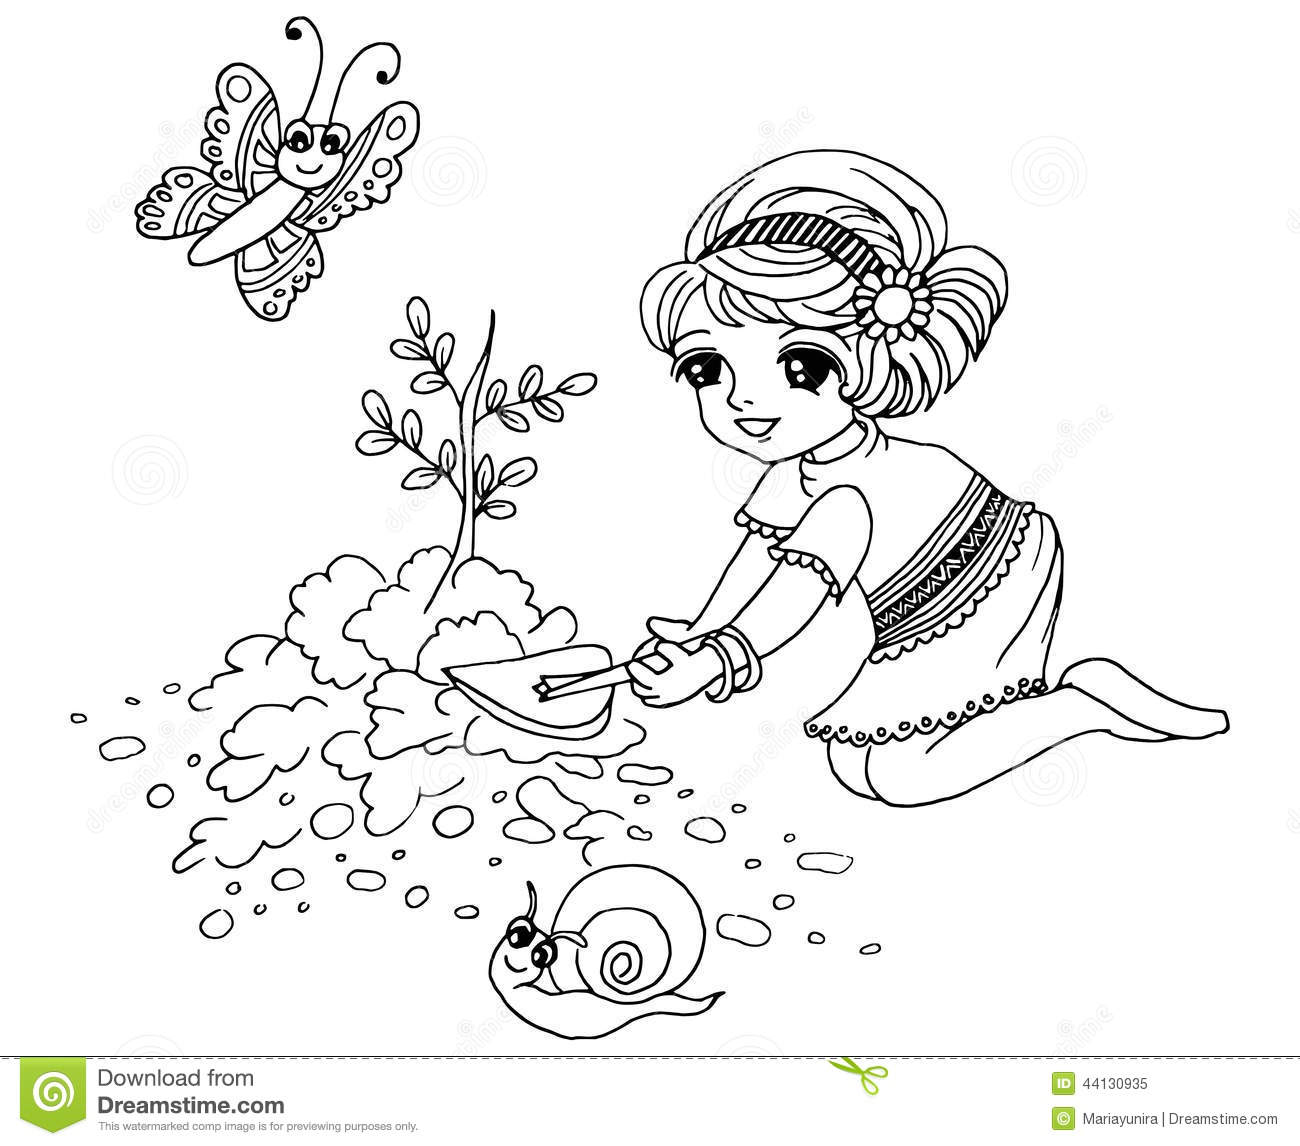 colouring book gardening royalty free illustration - Free Download Colouring Book